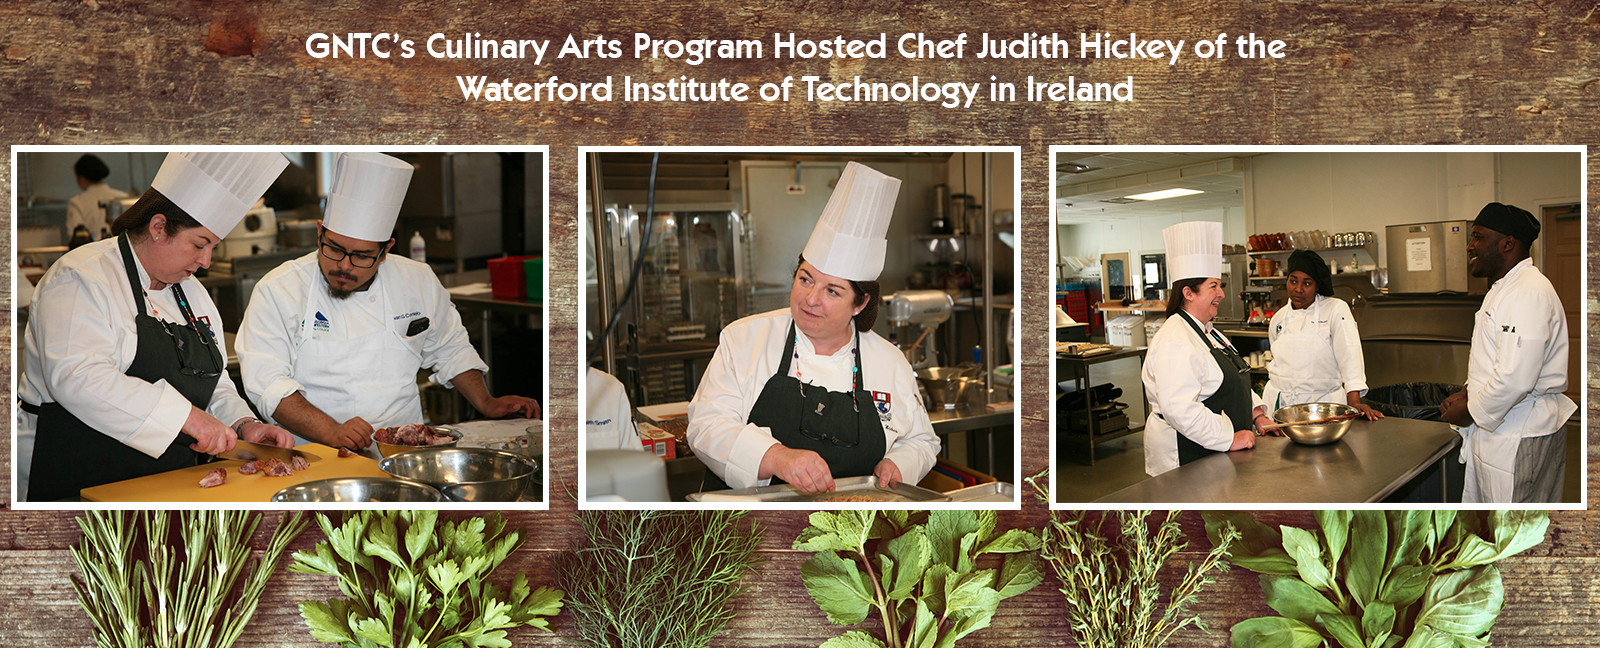 GNTC's Culinary Arts Program Hosted Chef Judith Hickey of the Waterford Institute of Technology in Ireland